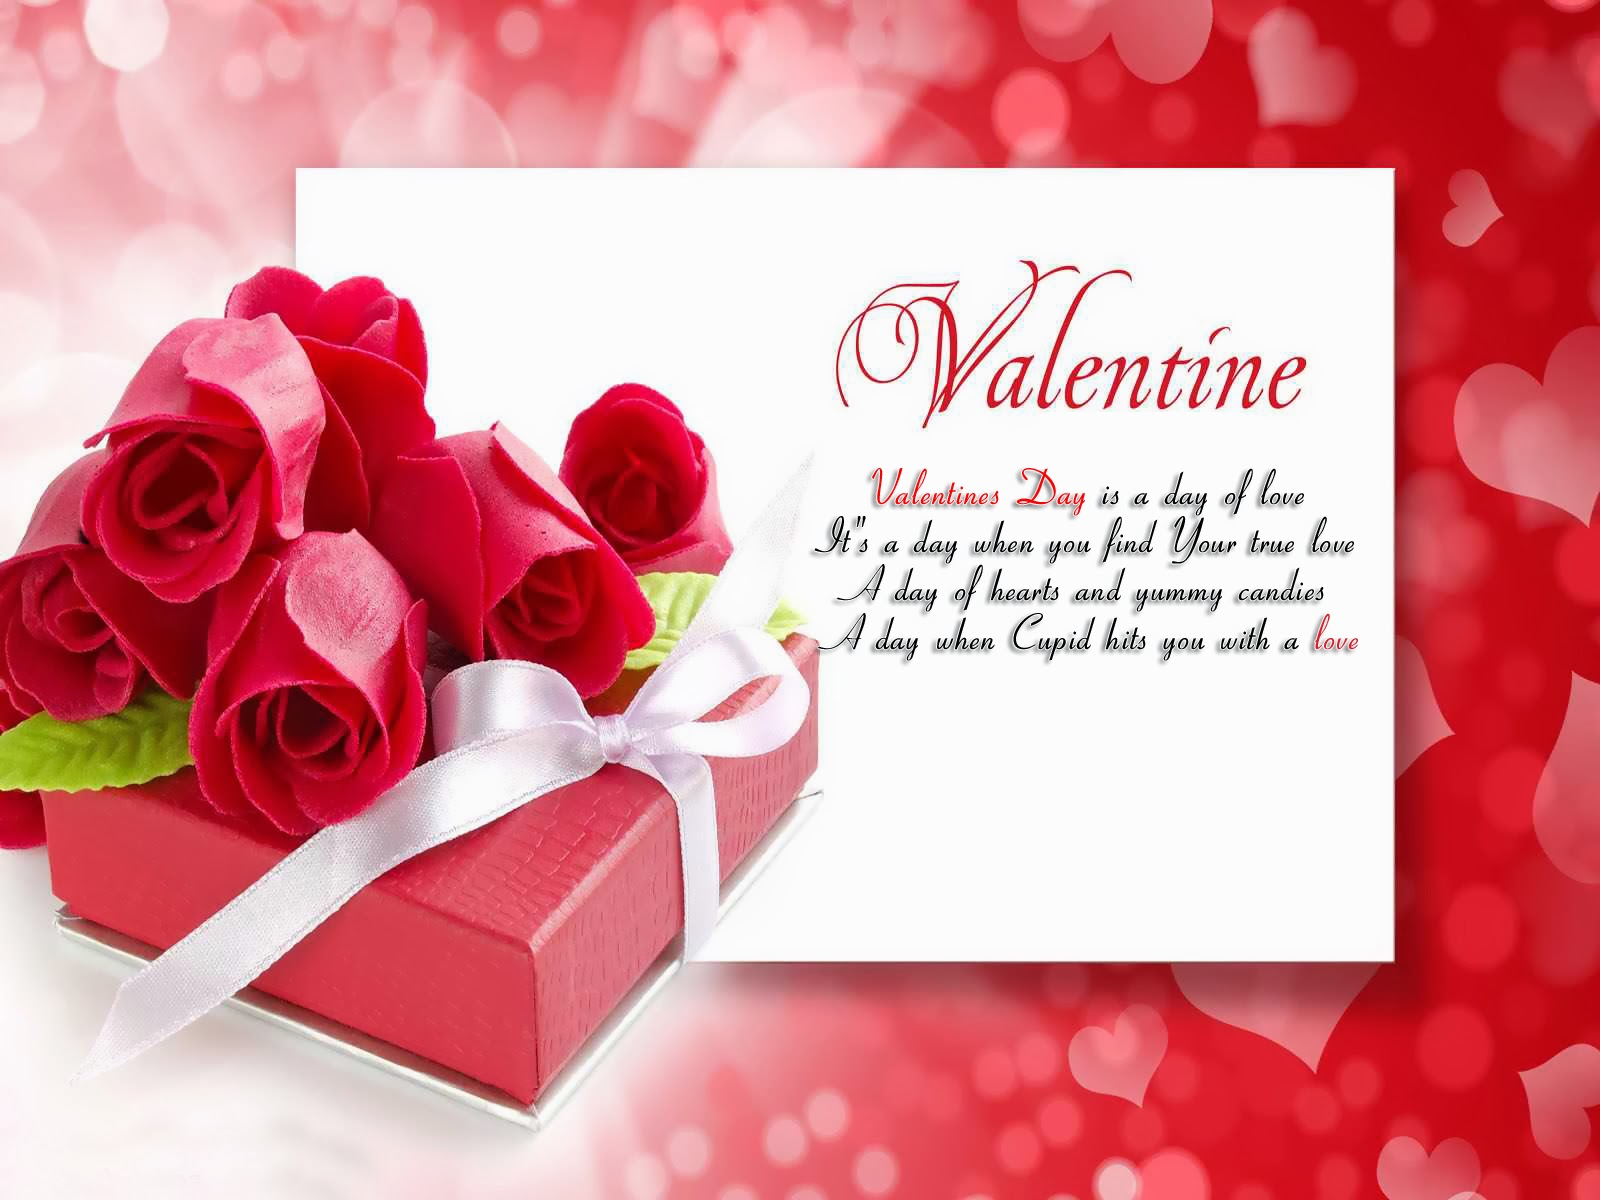 Romantic valentine gifts for your boyfriend 2015 for What is the best gift for valentine